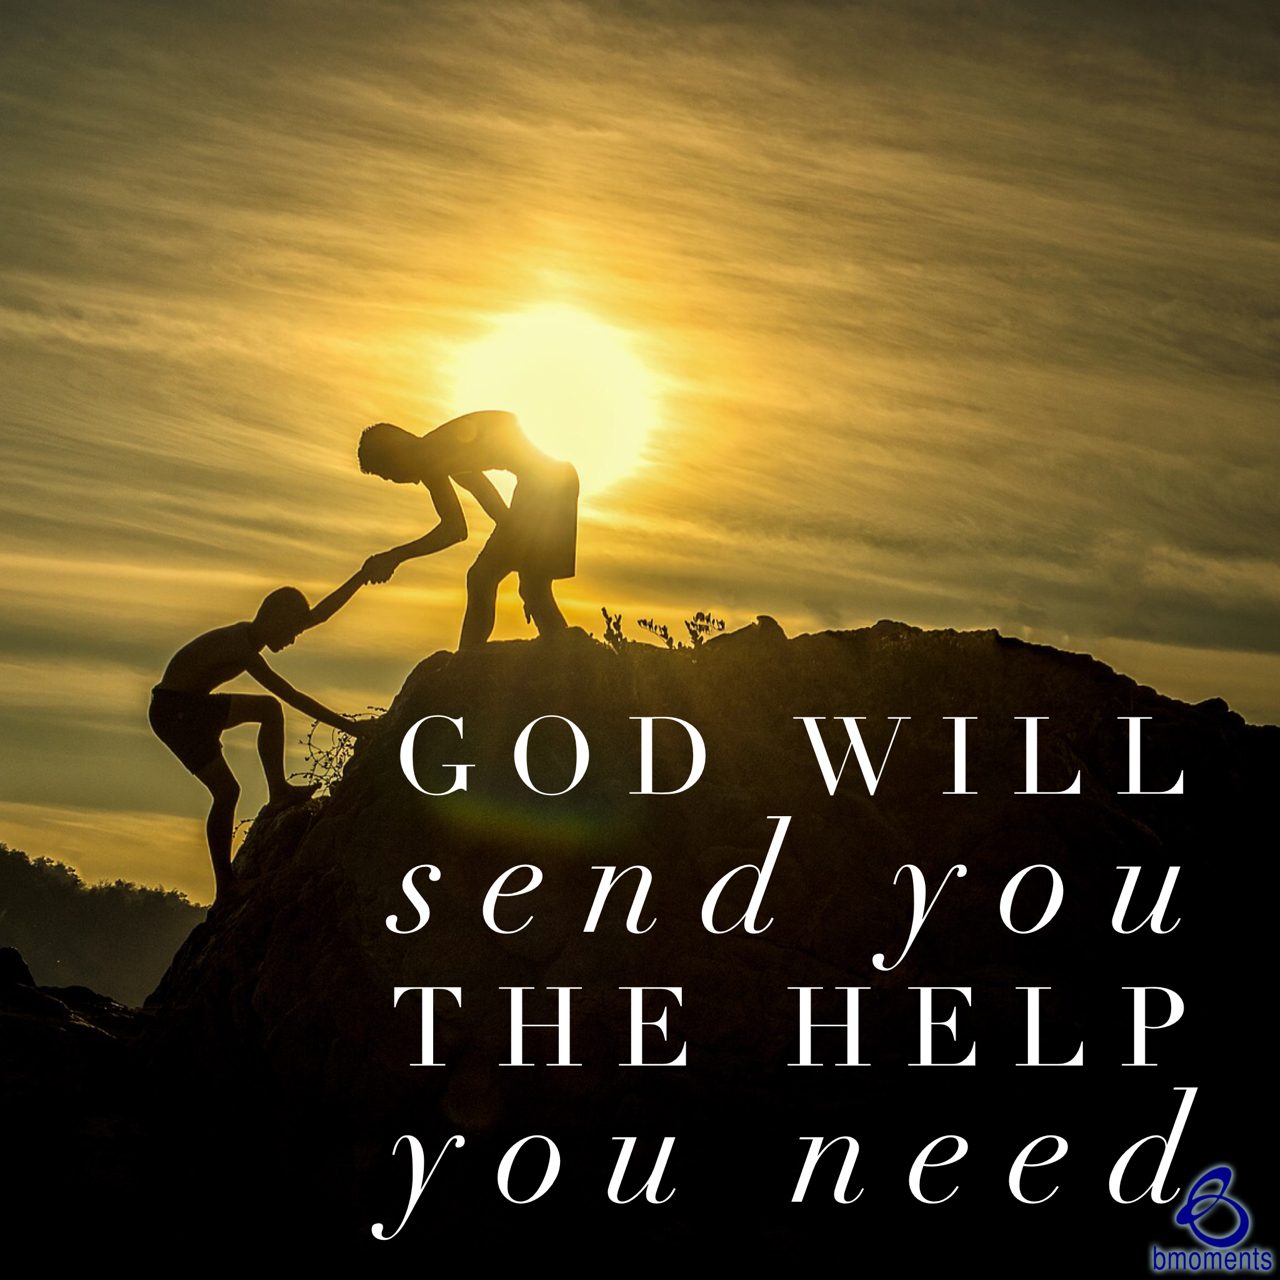 Make Good Use of the Help God Sends